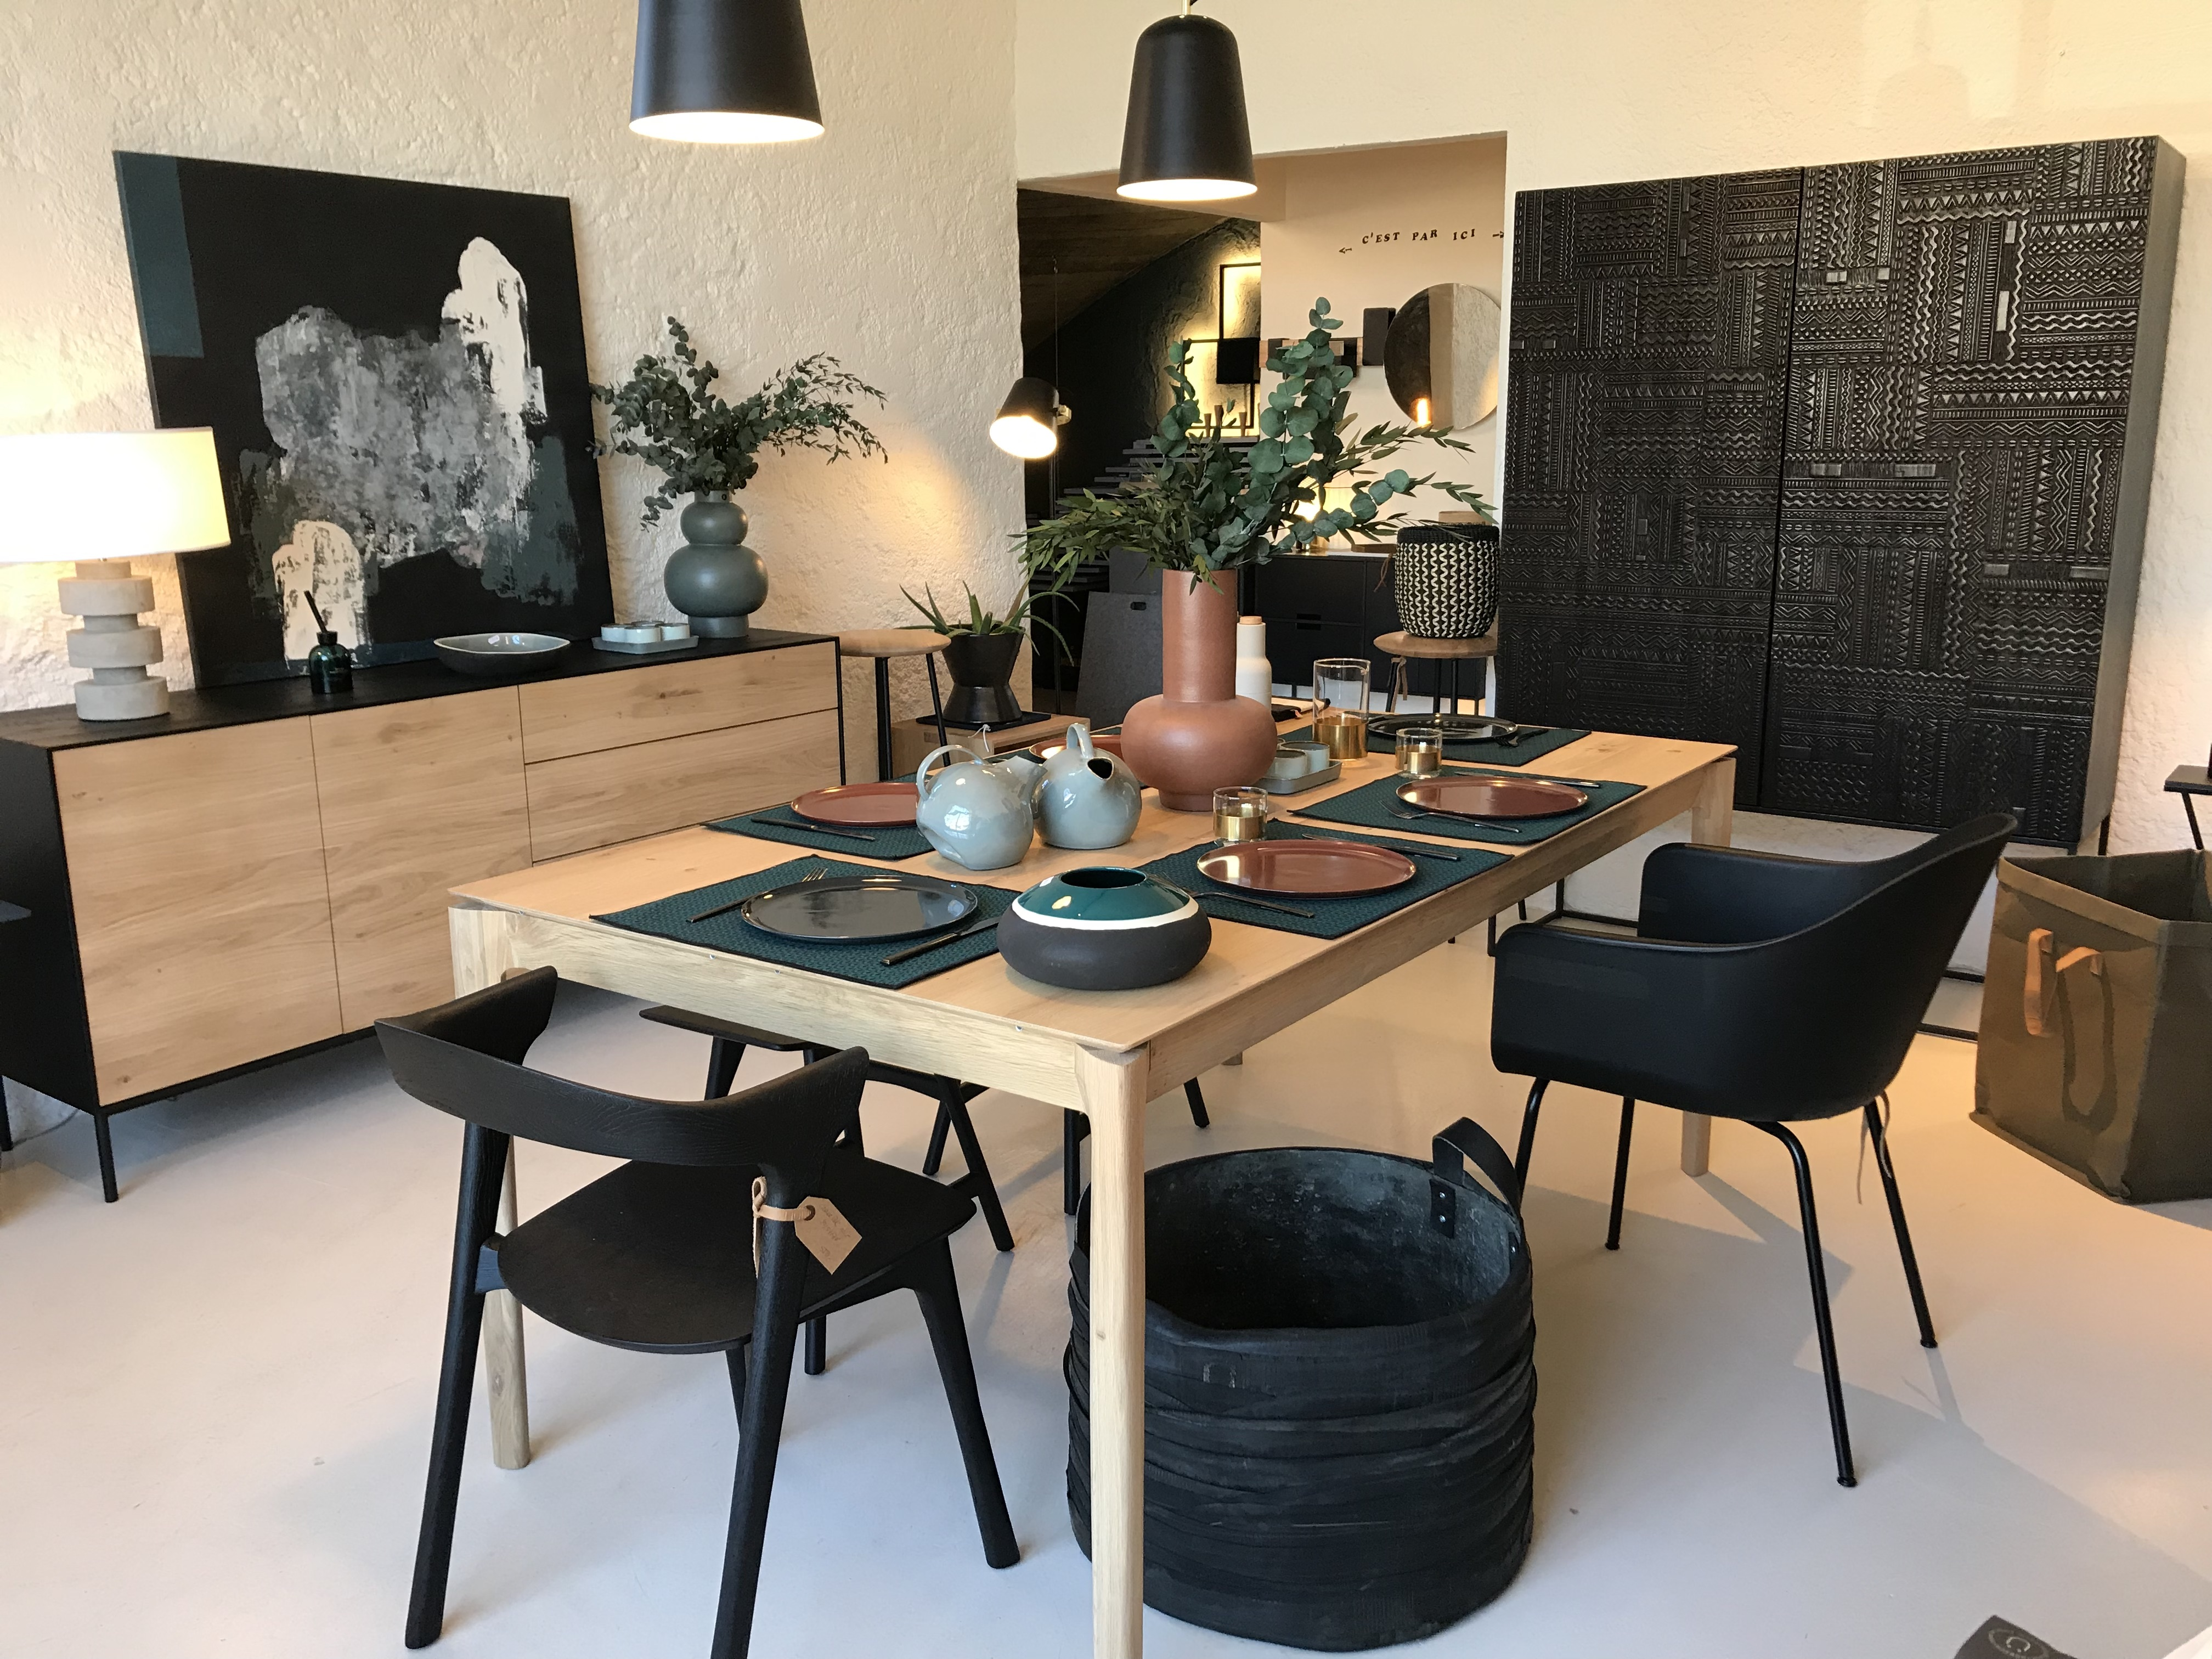 Mobilier chic et intemporel